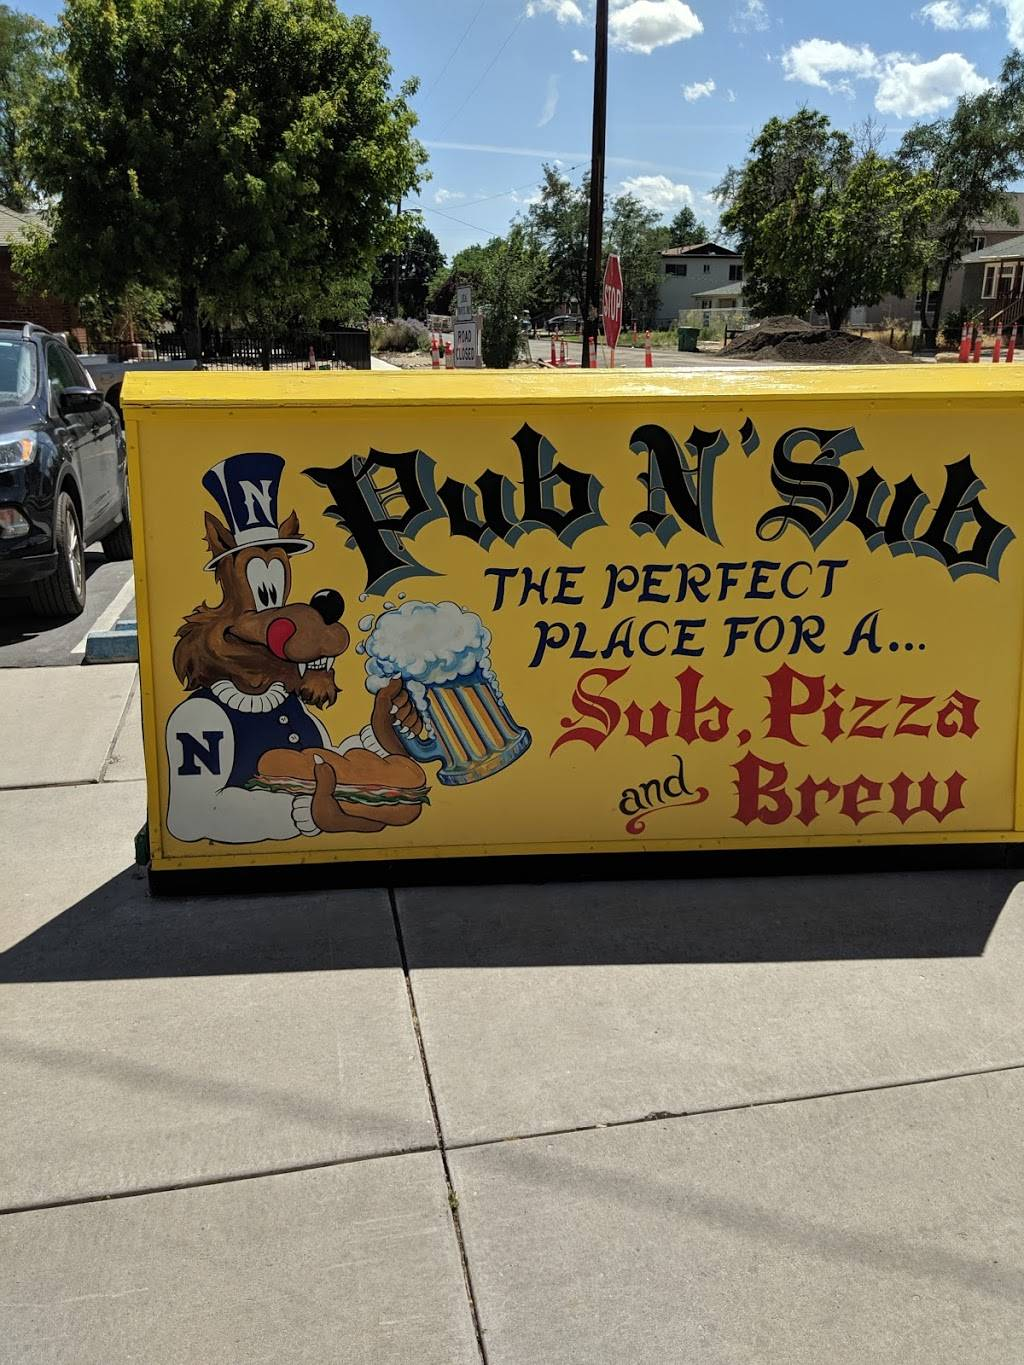 Pub N Sub - meal takeaway  | Photo 5 of 10 | Address: 1000 Ralston St, Reno, NV 89503, USA | Phone: (775) 322-8540